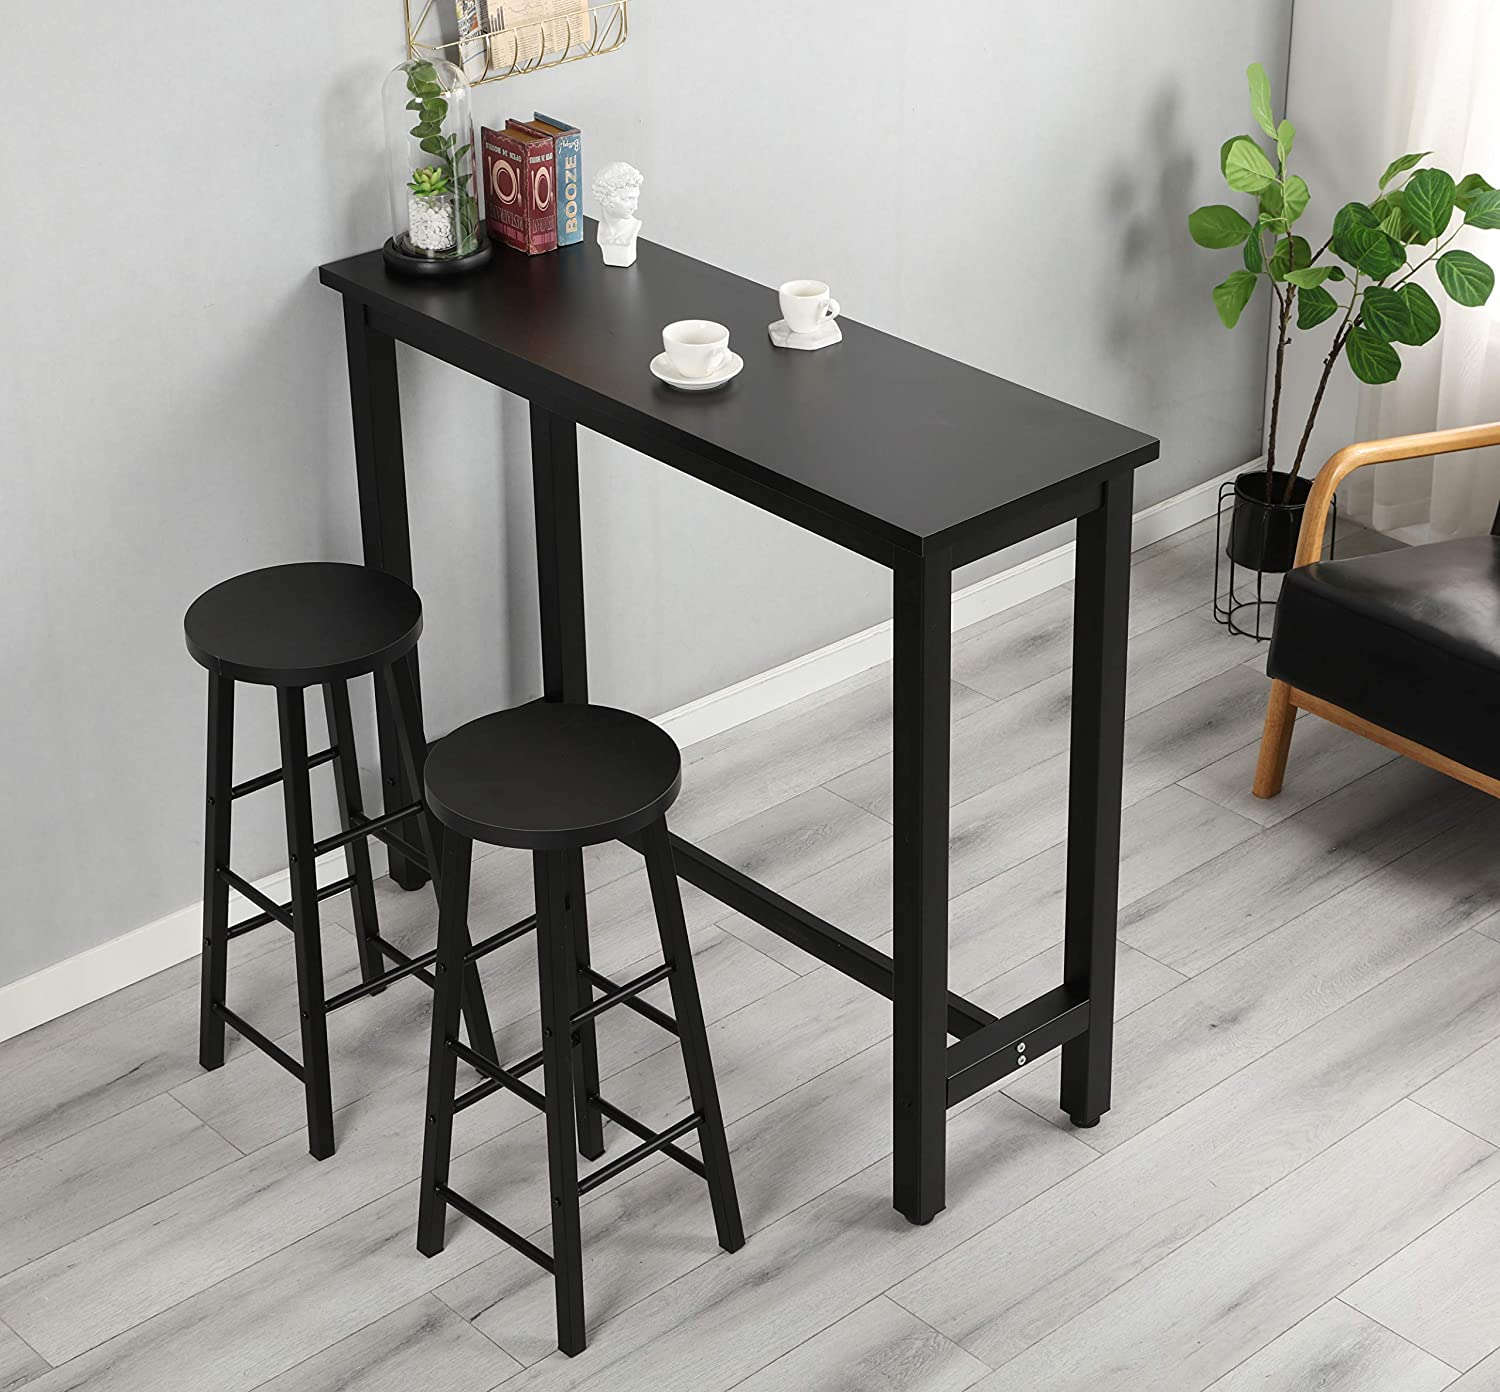 Flashtk 3 Piece Pub Table Set Counter Height Dining Table Set With 2 Bar Stools For Kitchen Breakfast Nook Dining Room Living Room Small Space Black Amazon Co Uk Kitchen Home